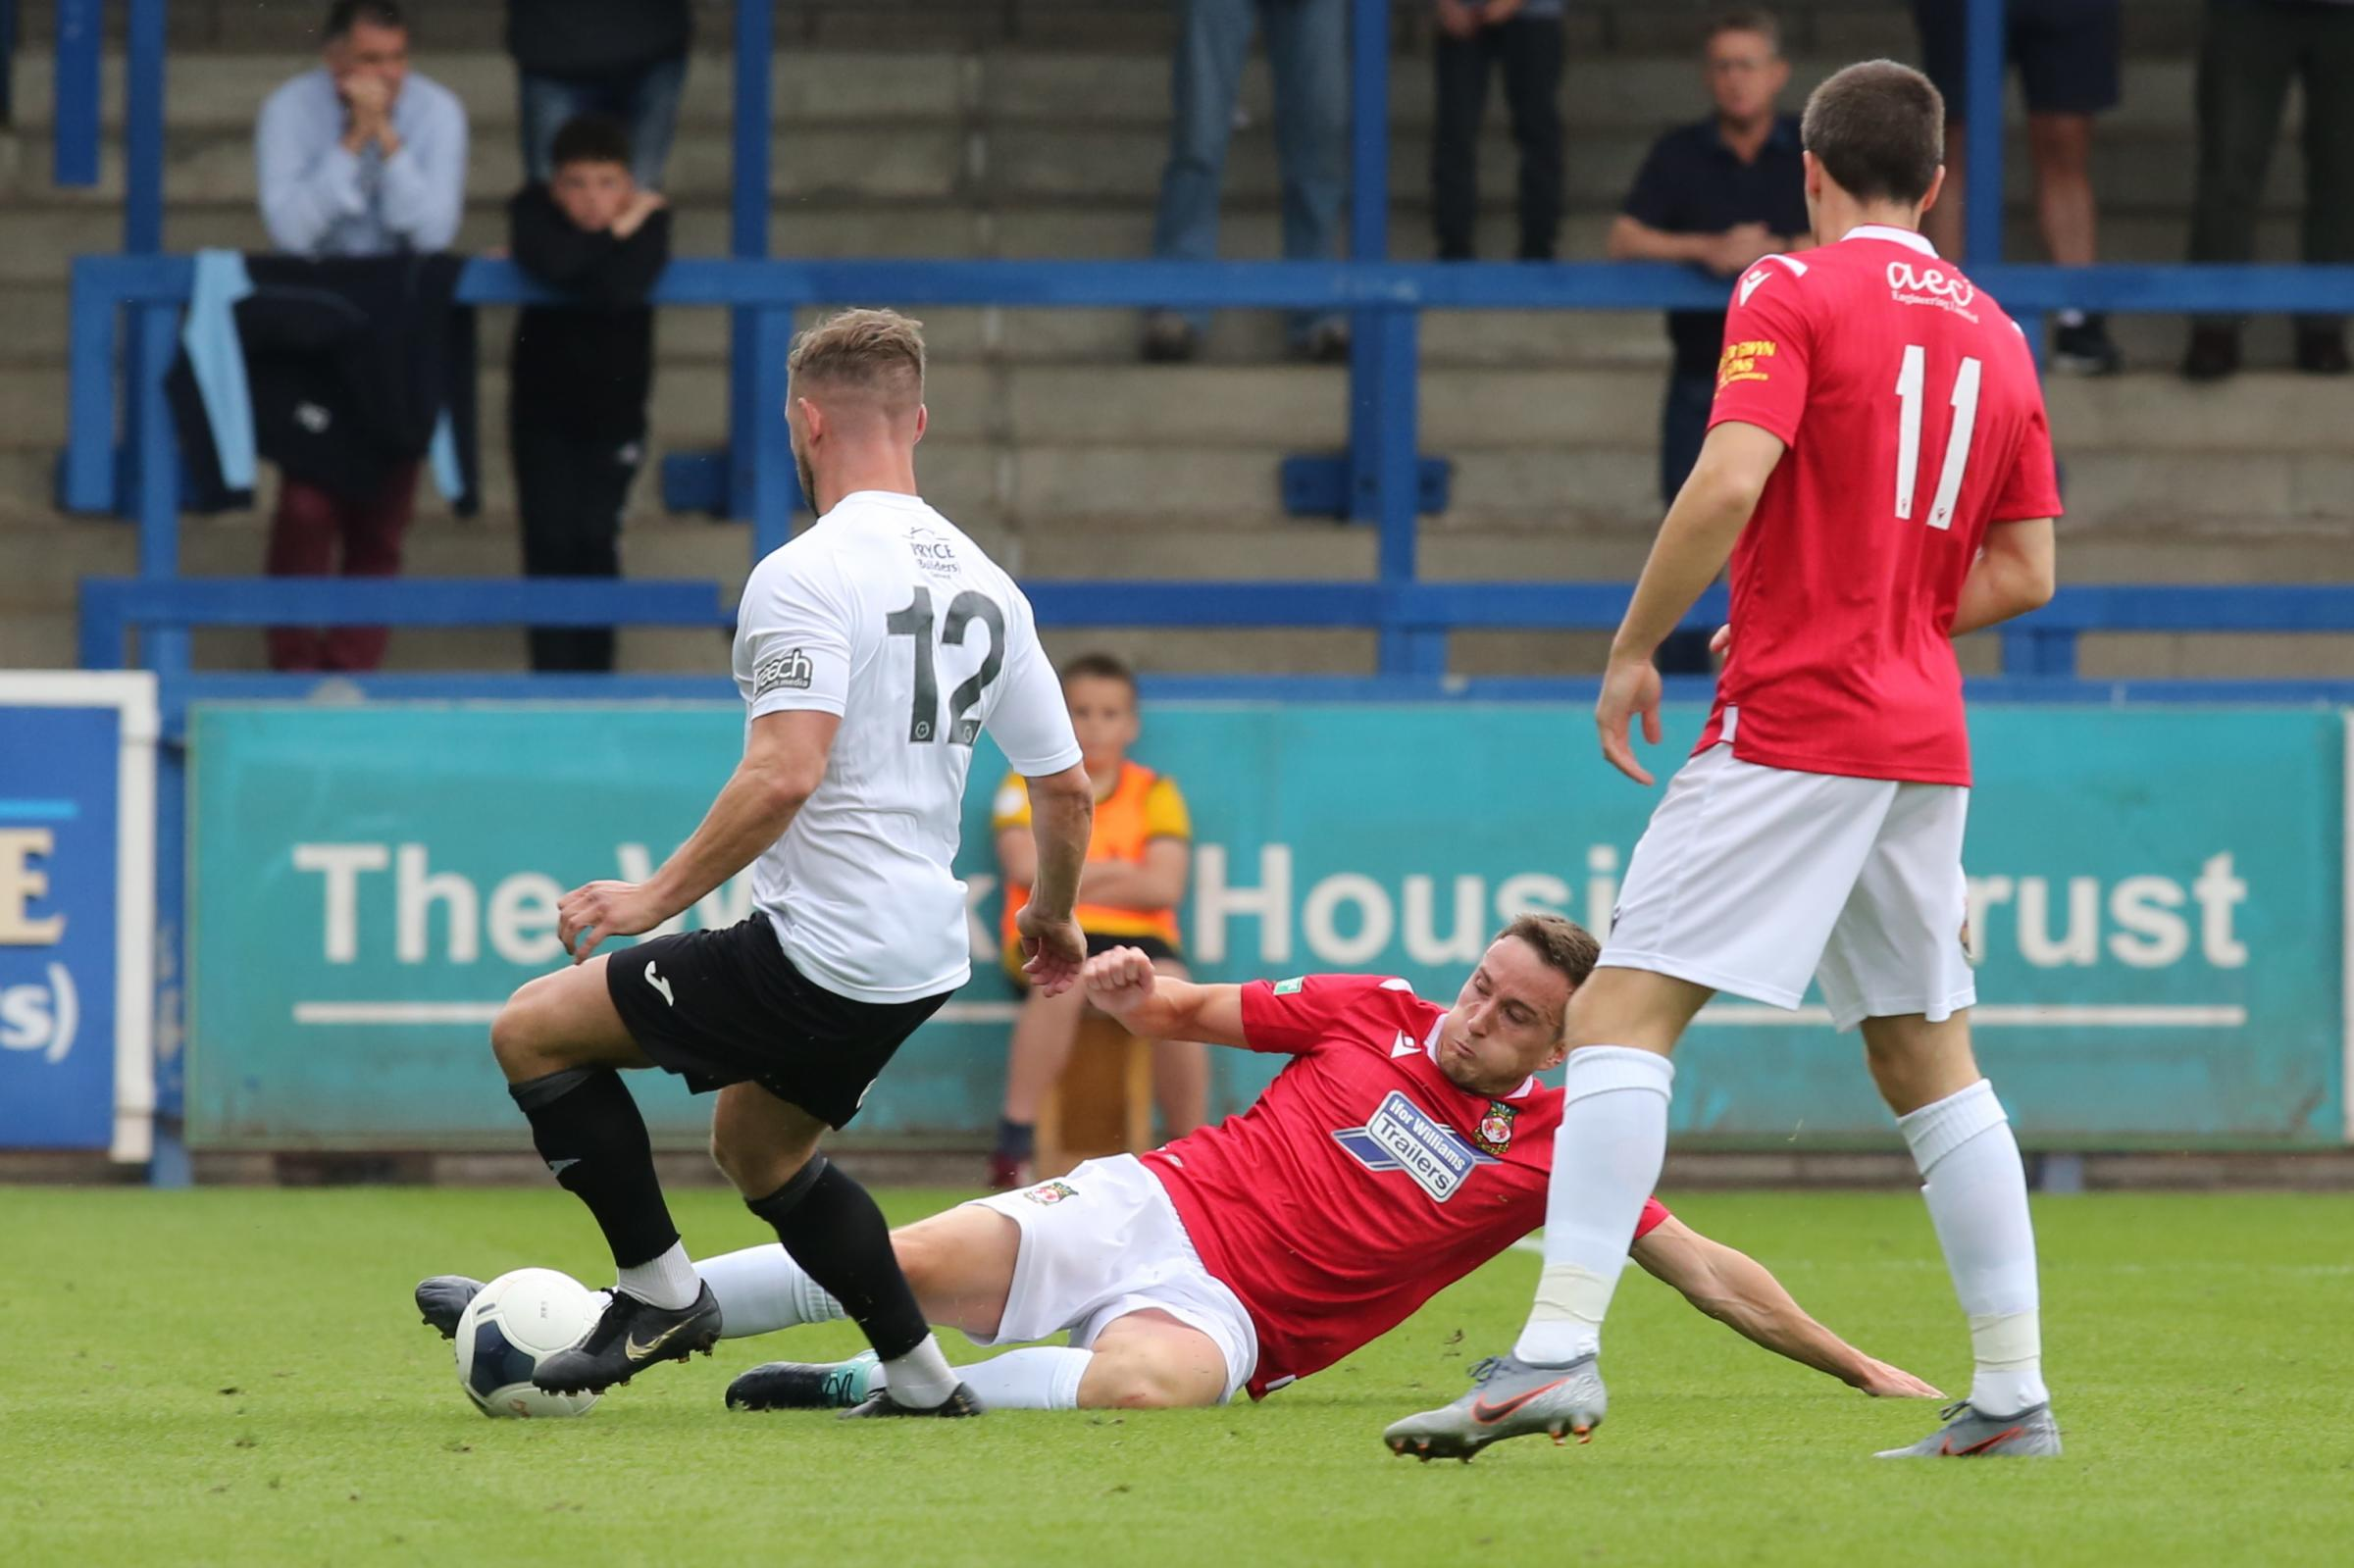 Wrexham AFC midfielder Luke Young happy with his form but midfielder won't rest on his laurels with Reds still not safe